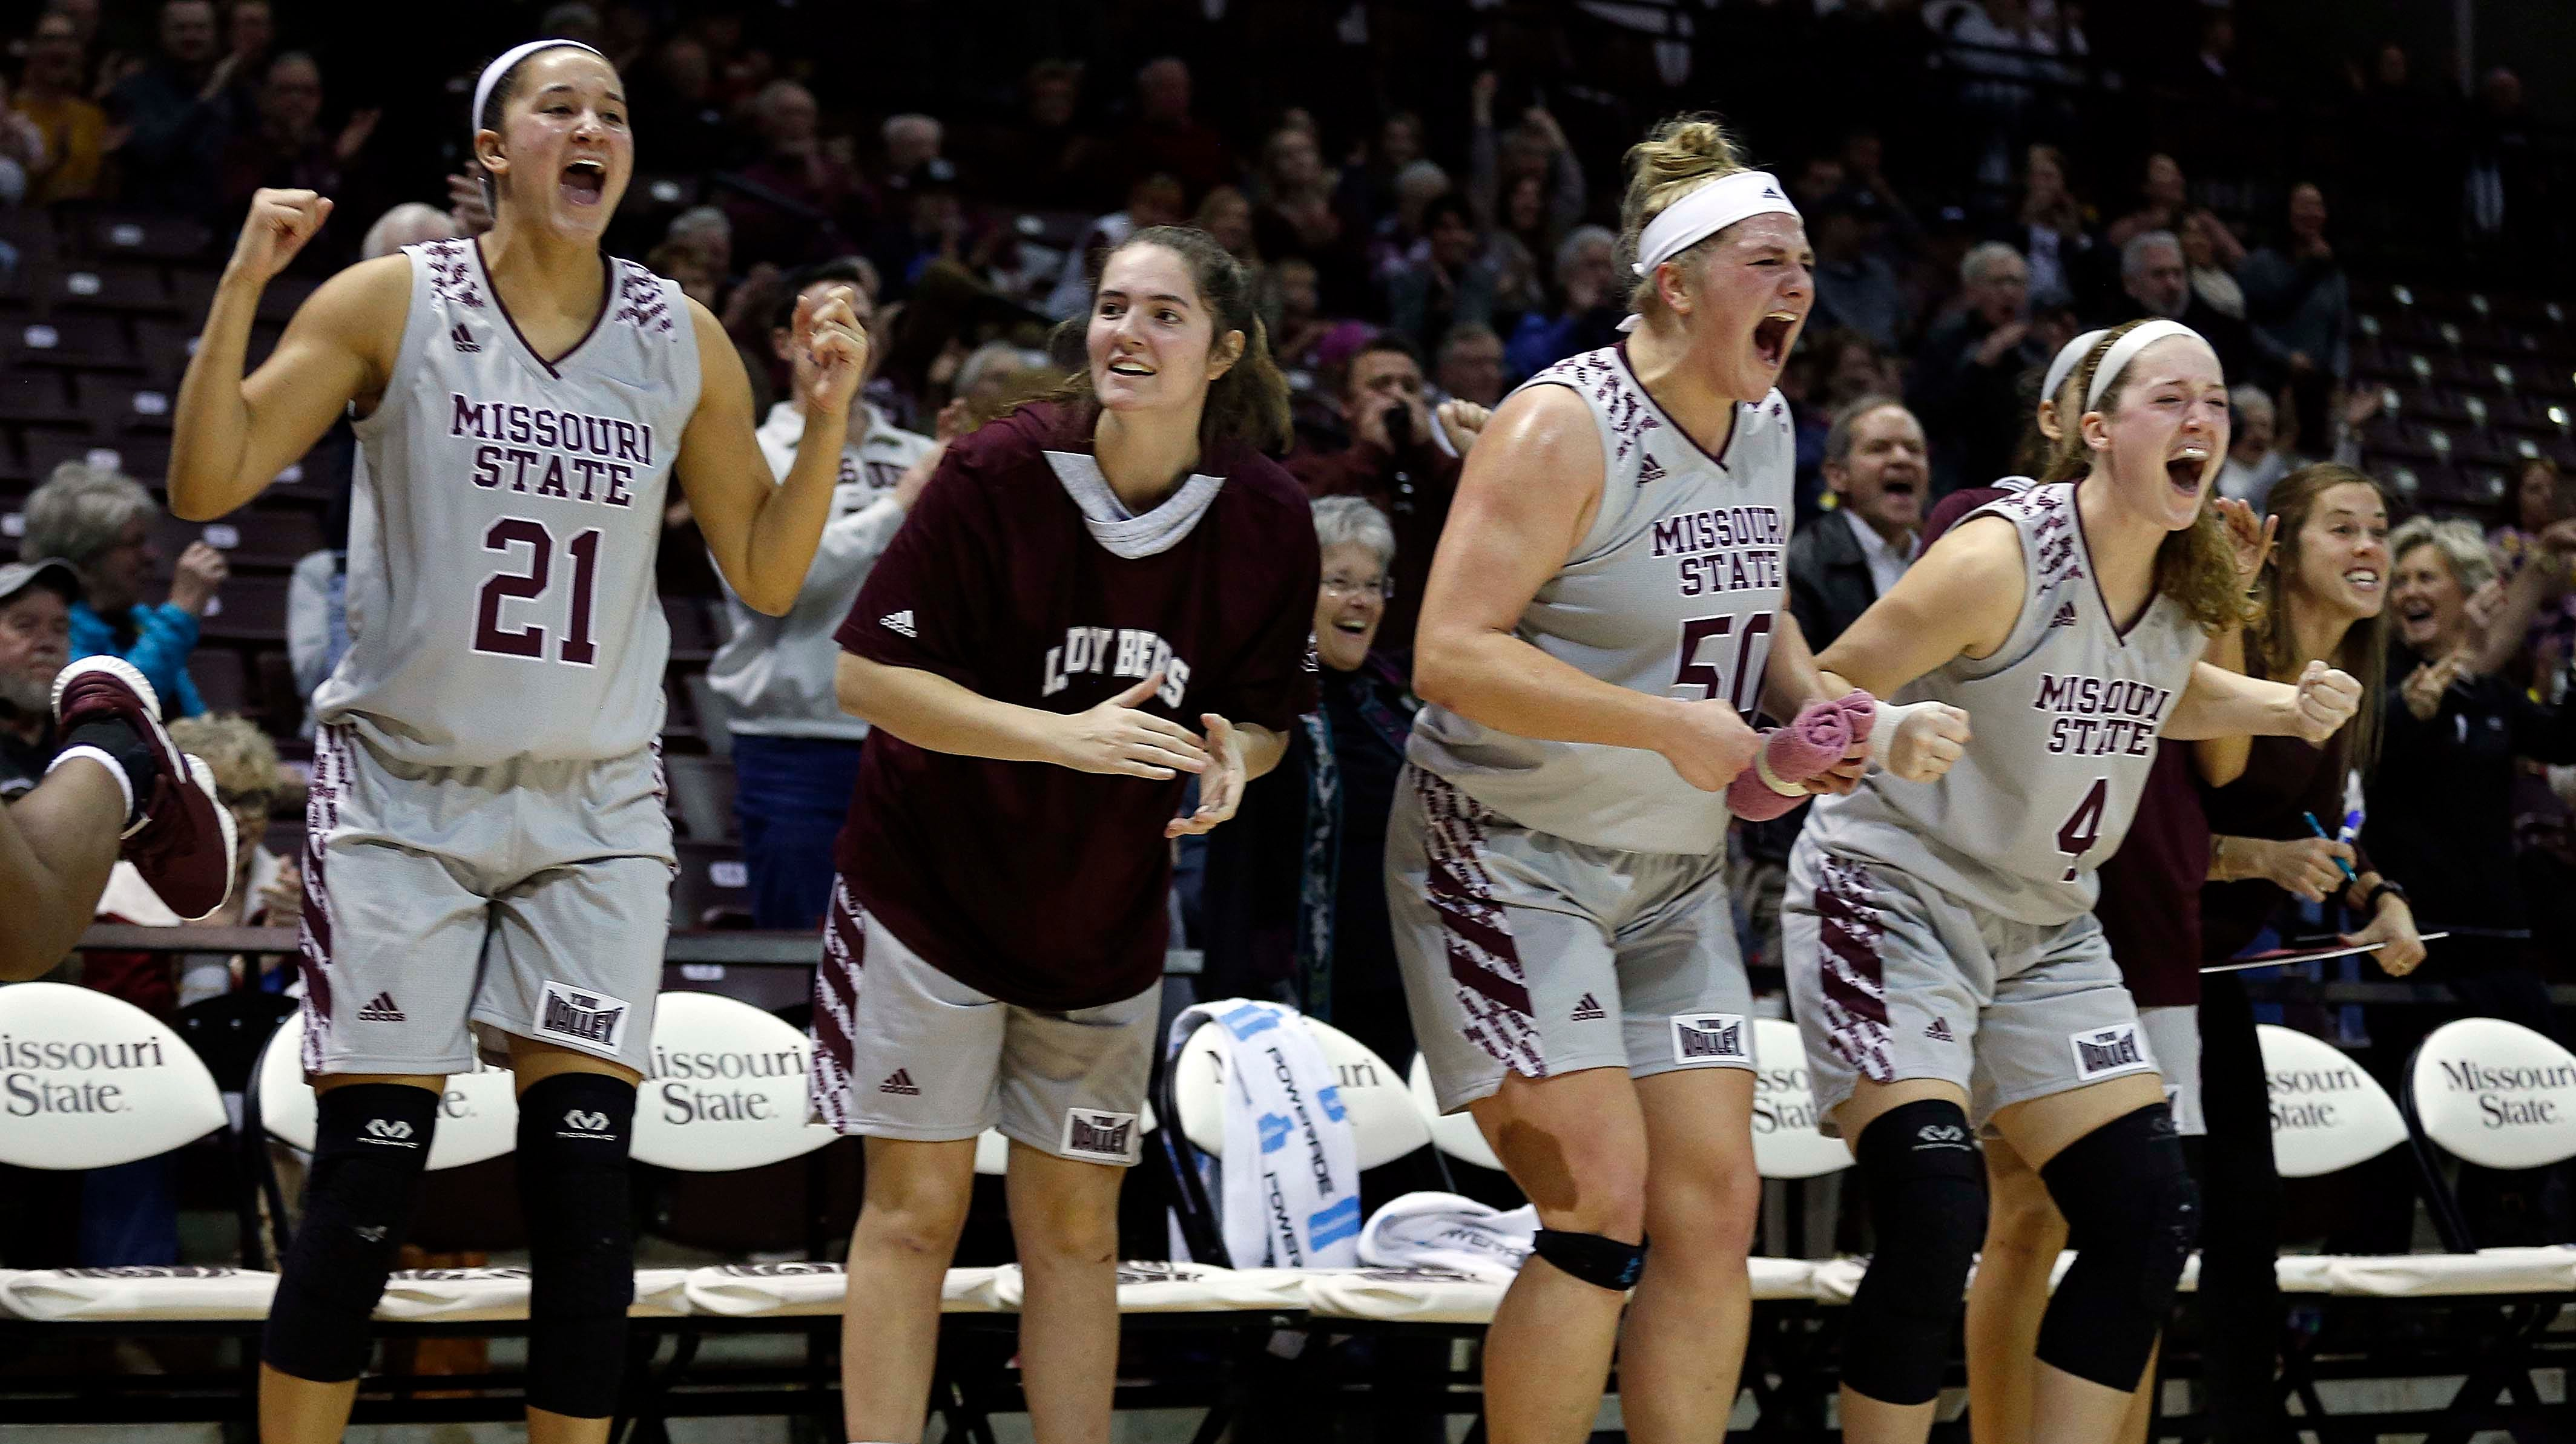 The MSU Lady Bears against Gonzaga at JQH Arena in Springfield on December 16, 2018.